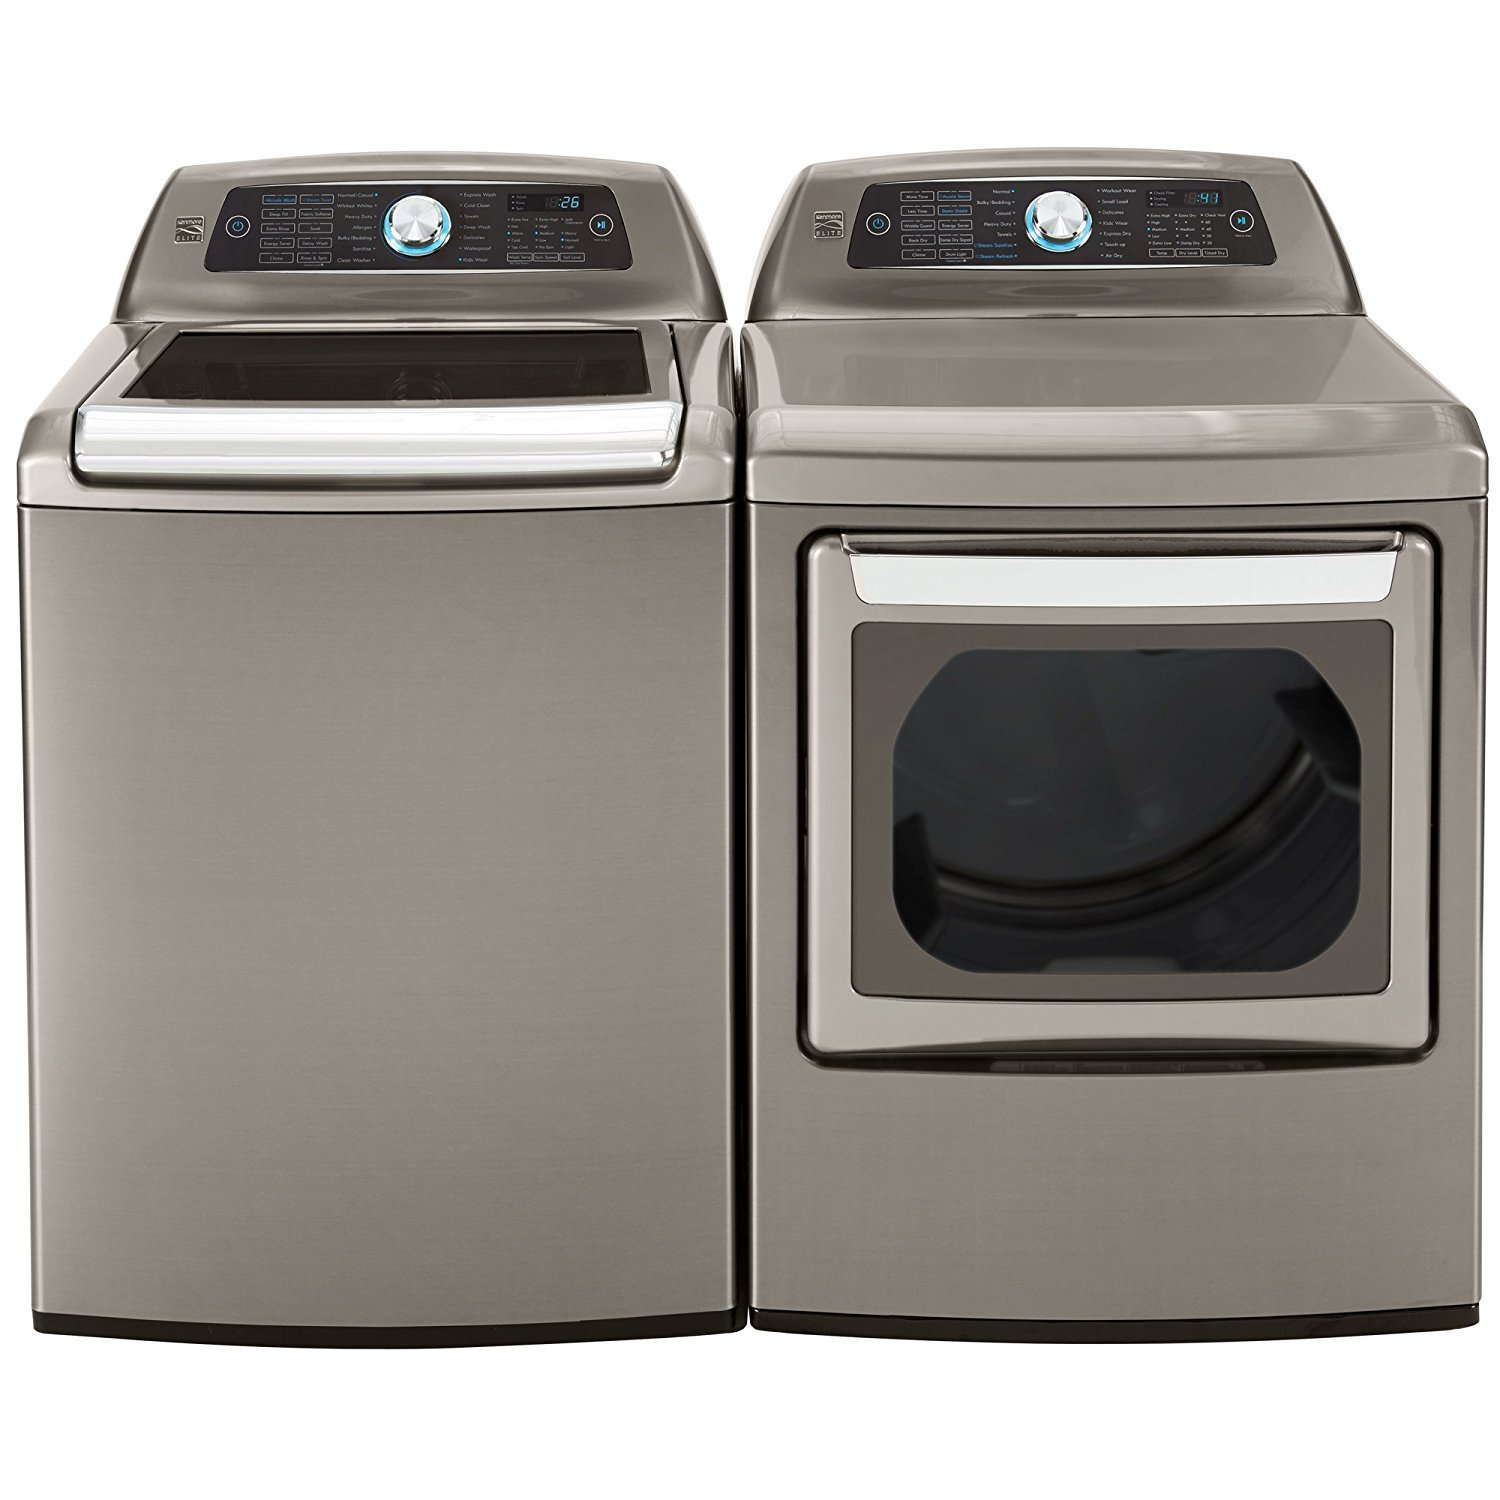 Shop the best washer & dryer deals of the season at Sears. Simplify laundry day with standalone washers, dryers, all-in-one units and other equipment. Having a washer and dryer in your home makes laundry simple. You won't have to haul large loads of clothes to the Laundromat or fight to get the free machine in a shared laundry room.